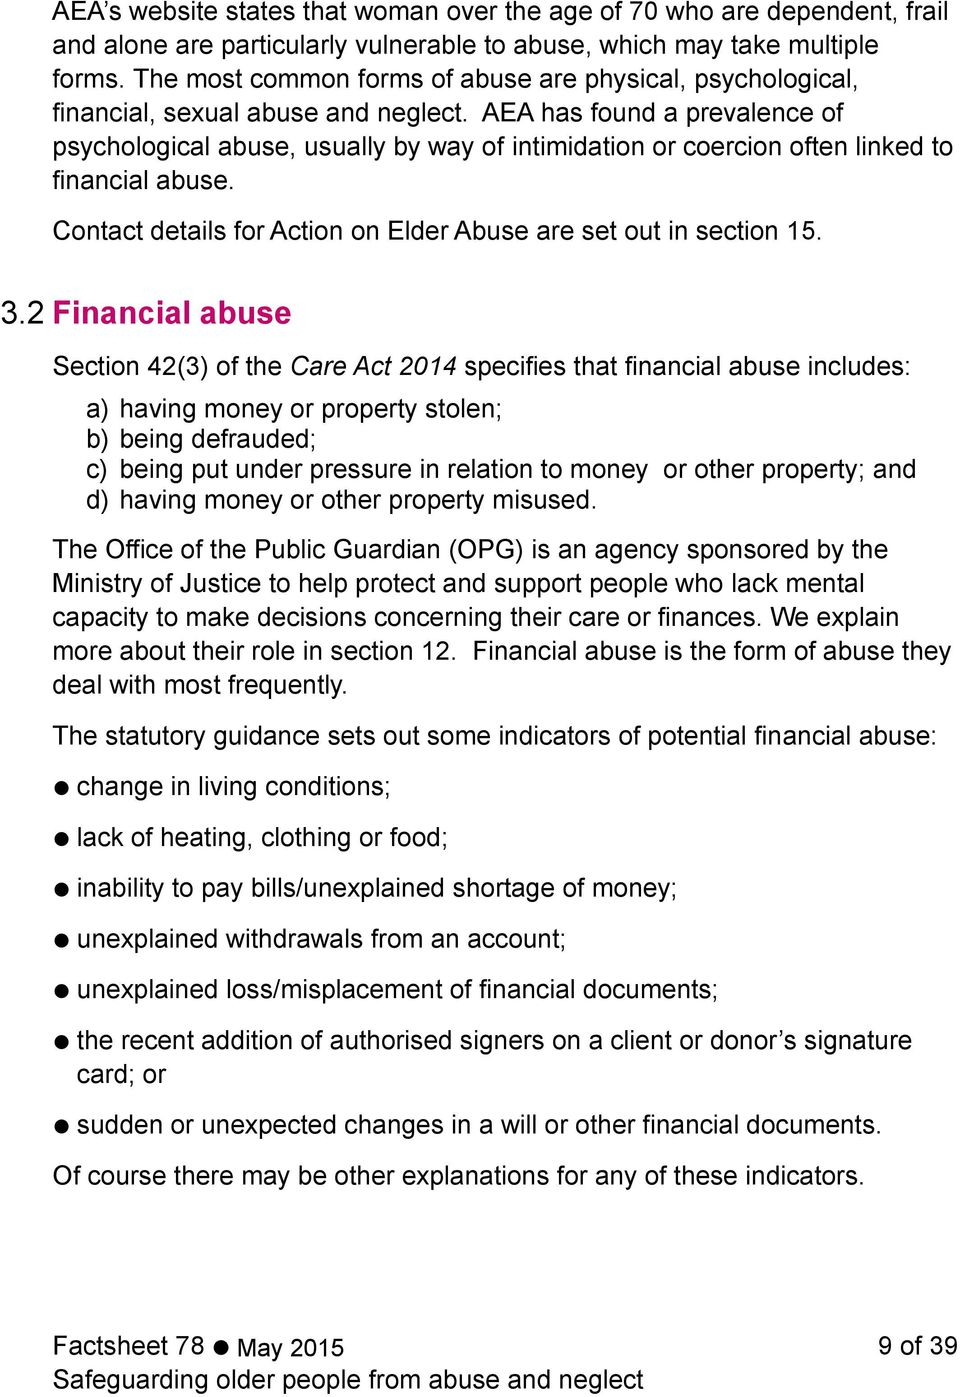 AEA has found a prevalence of psychological abuse, usually by way of intimidation or coercion often linked to financial abuse. Contact details for Action on Elder Abuse are set out in section 15. 3.